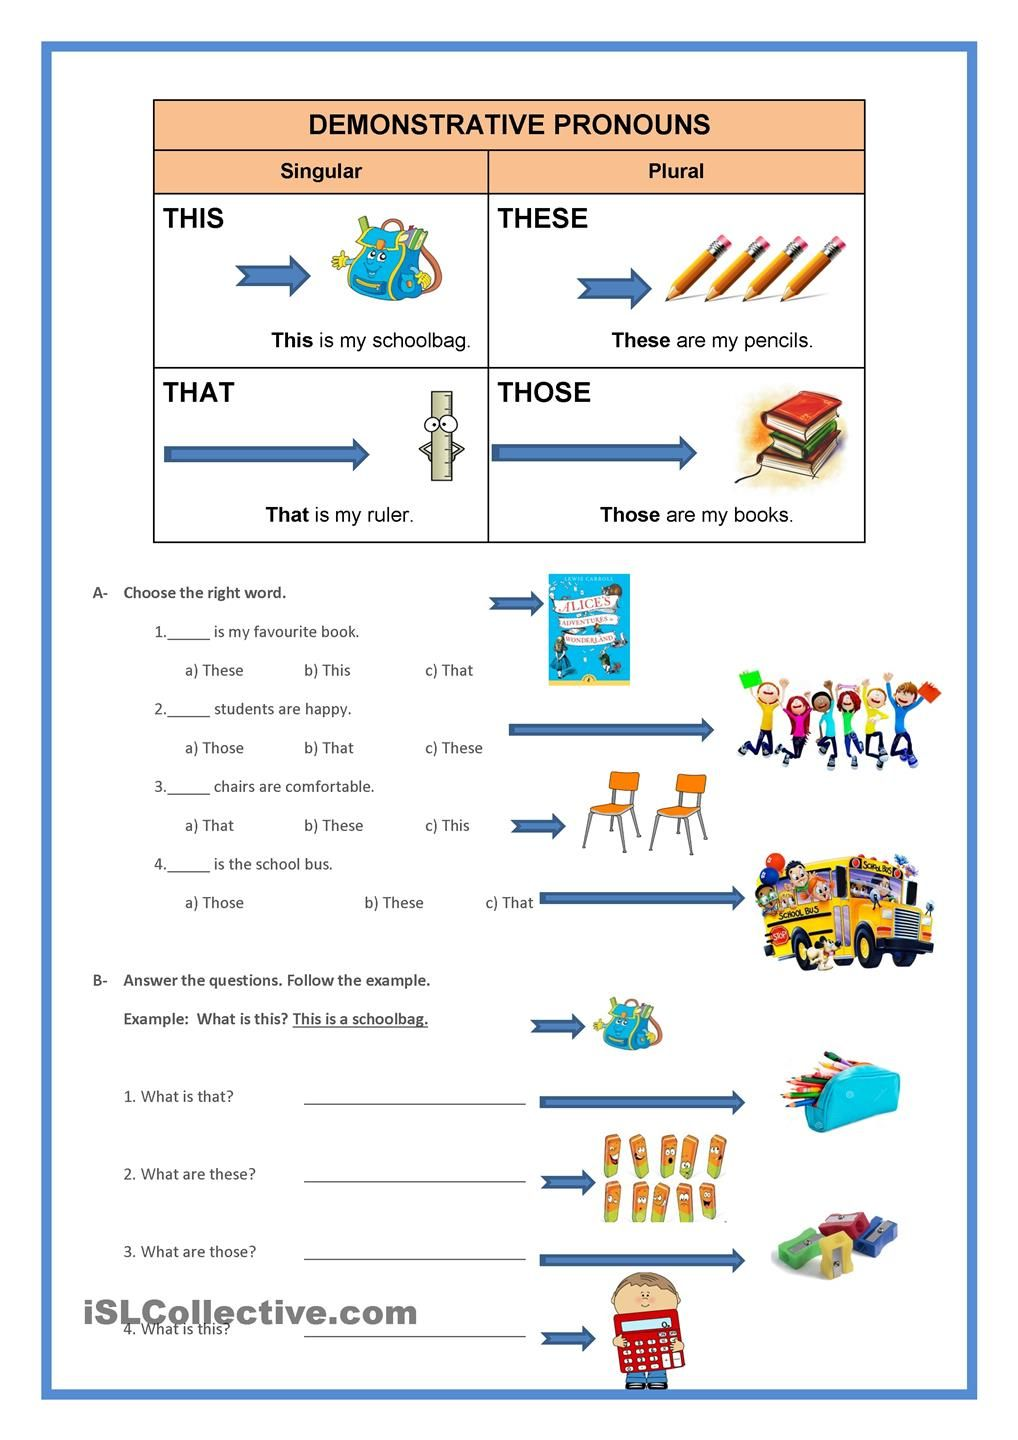 Demonstrative Pronouns Pronoun worksheets, Demonstrative